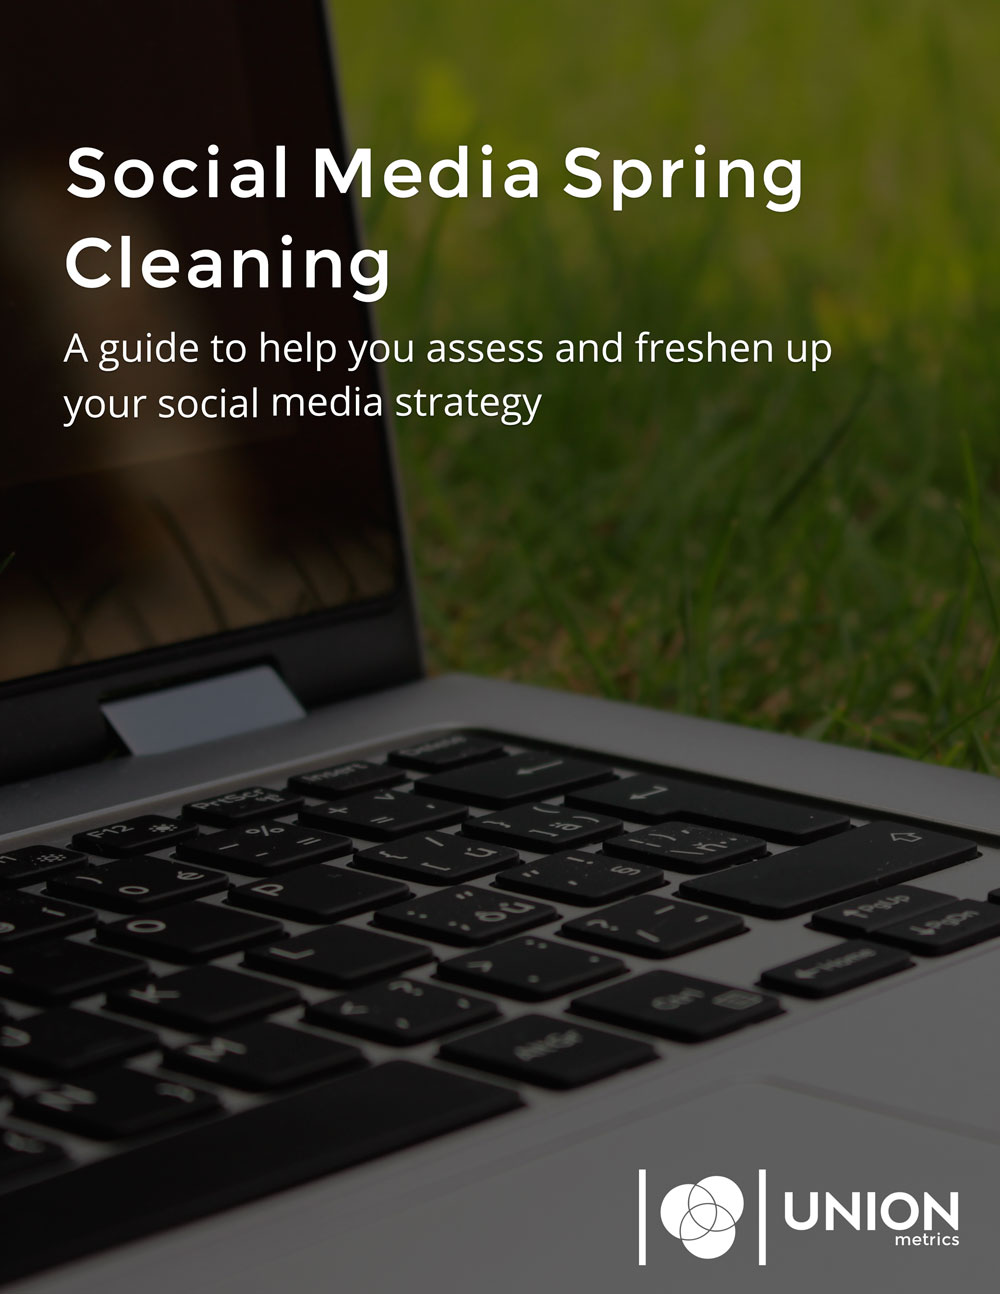 Social media spring cleaning checklist